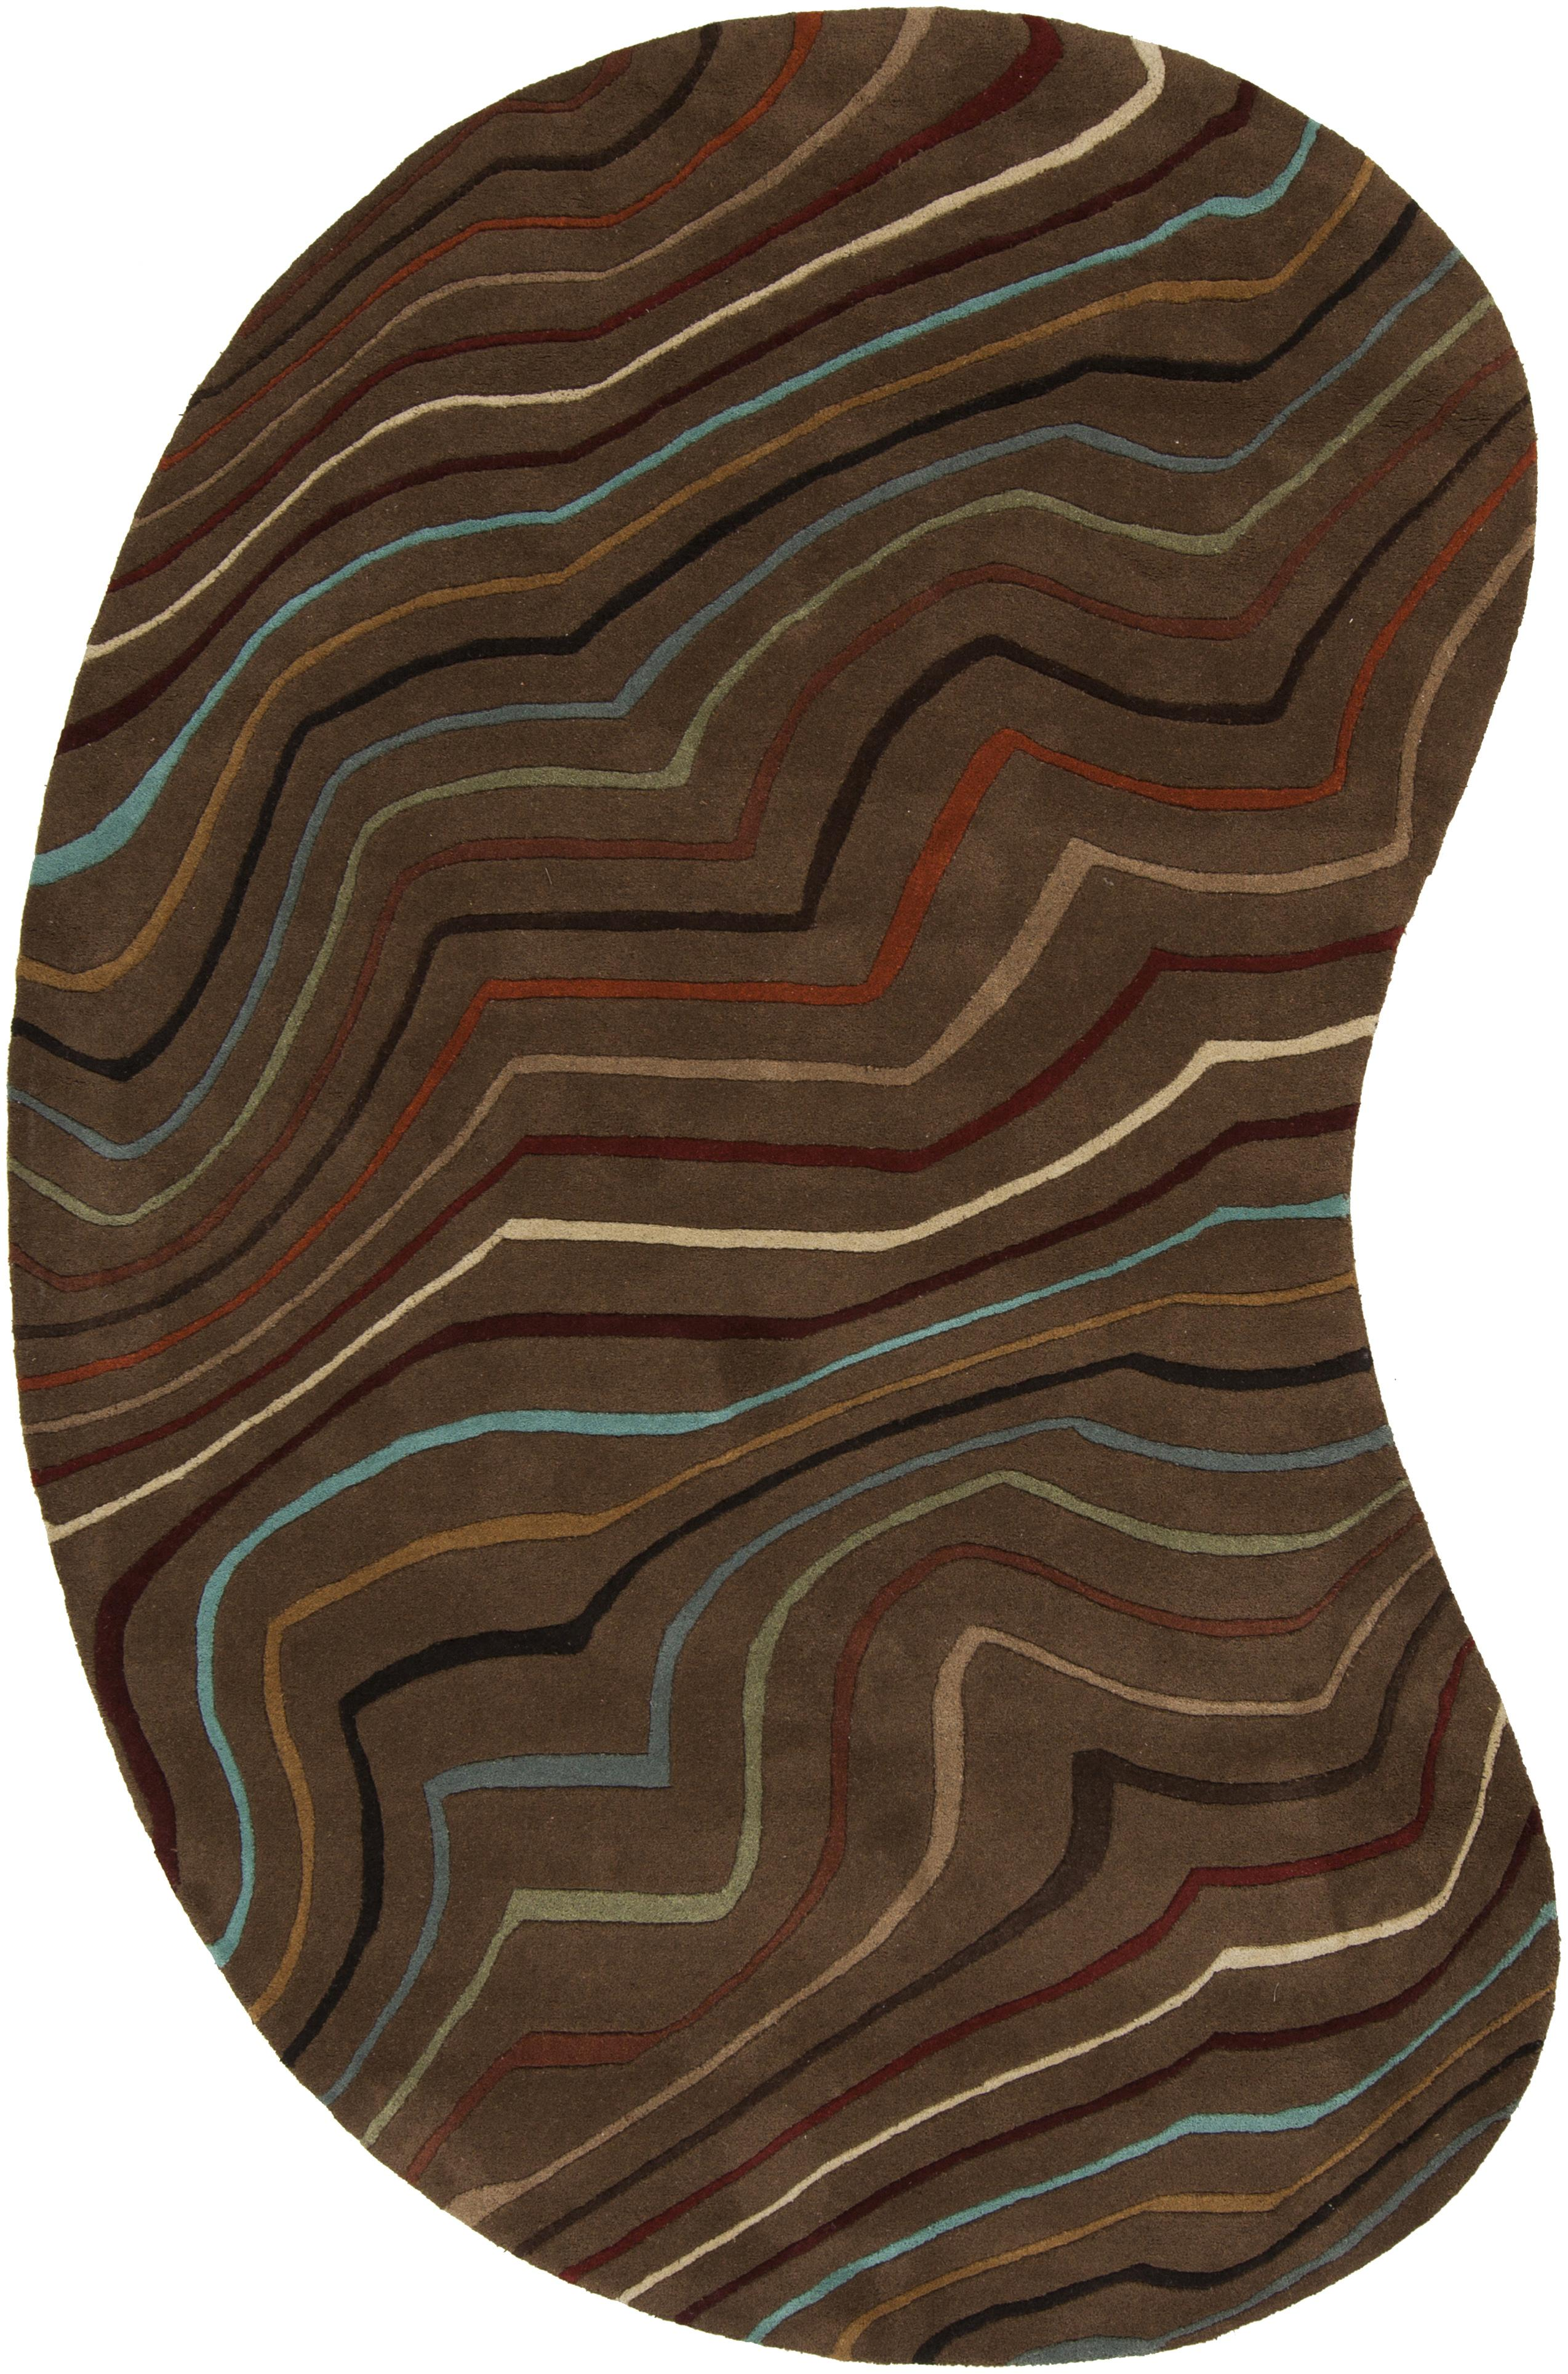 Surya Rugs Forum 6' x 9' Kidney - Item Number: FM7155-69KDNY